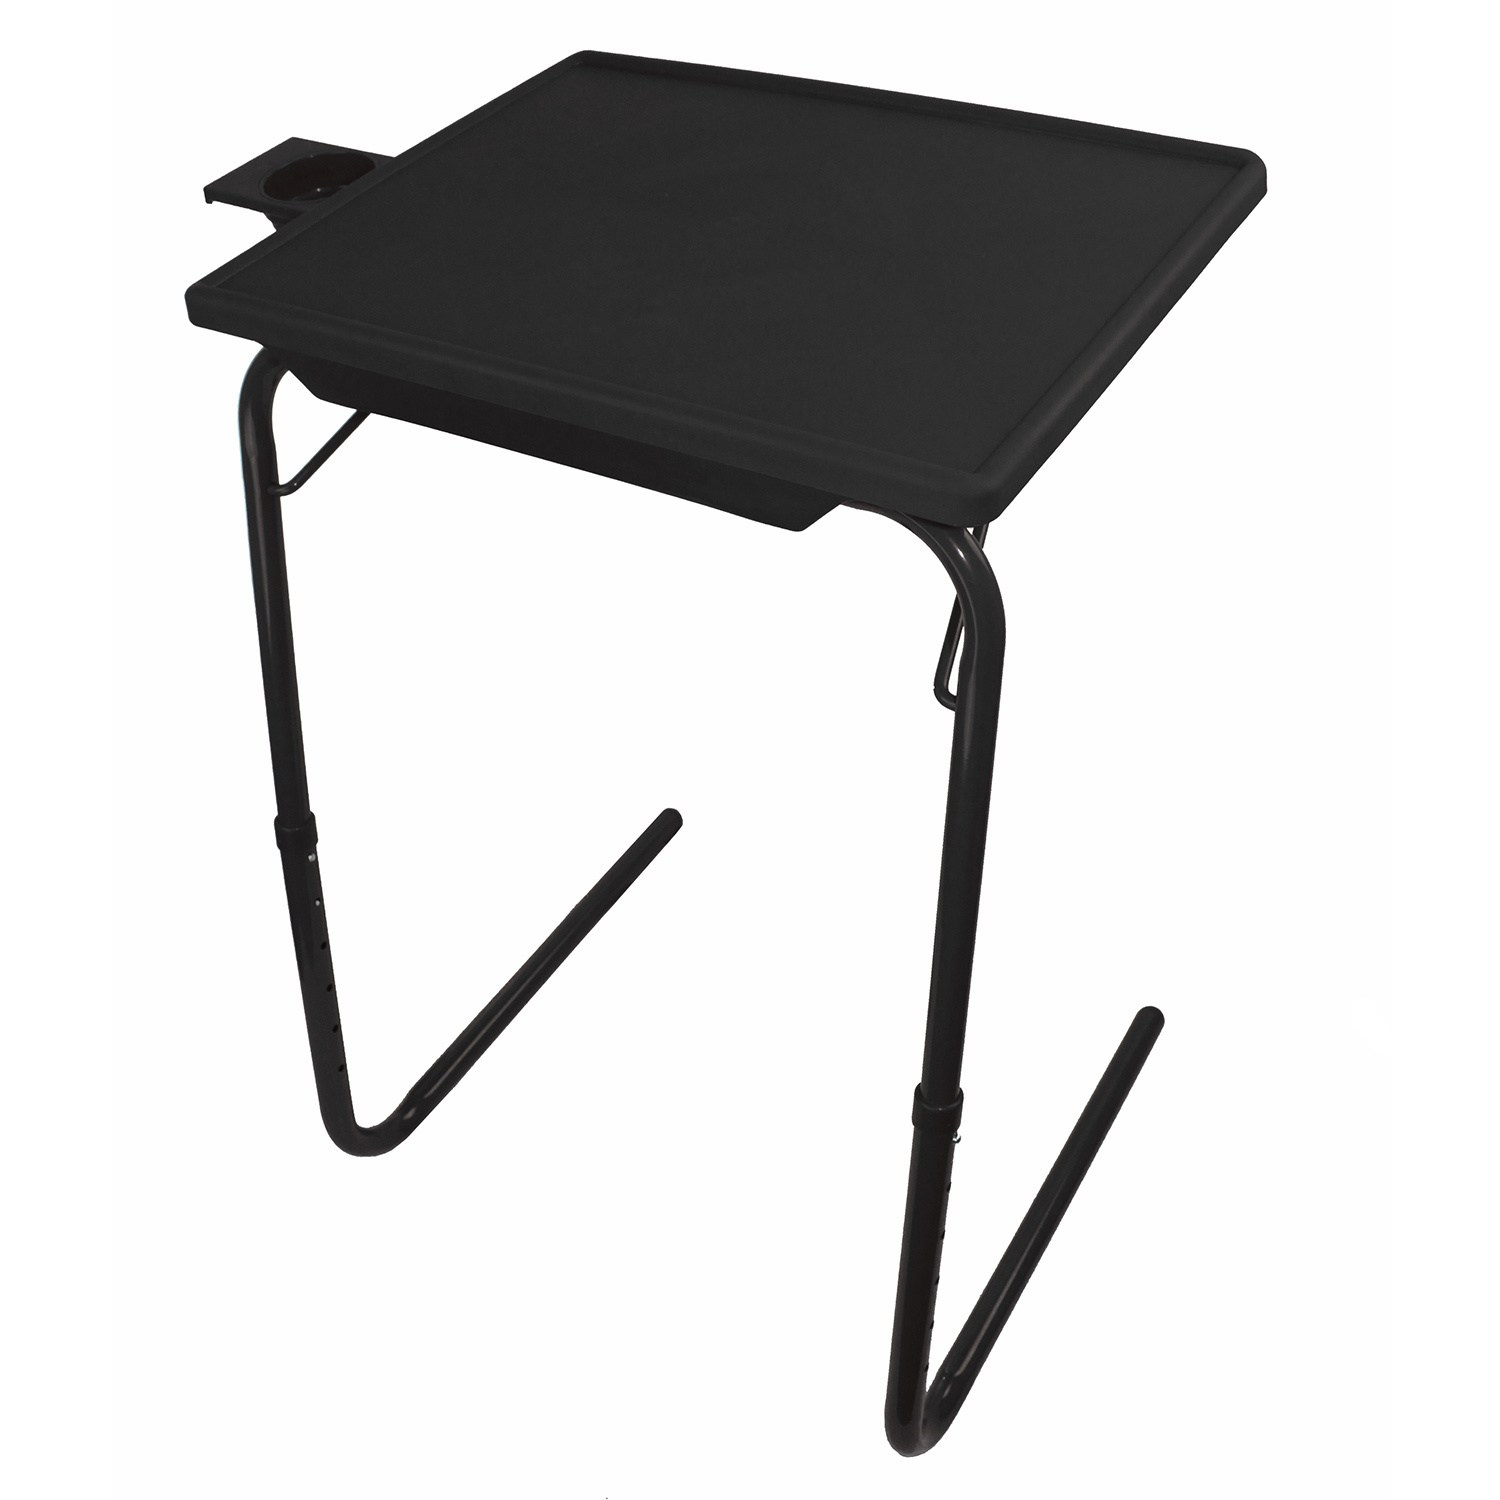 Portable Foldable Tv Tray Table Laptop Eating Stand W Adjustable